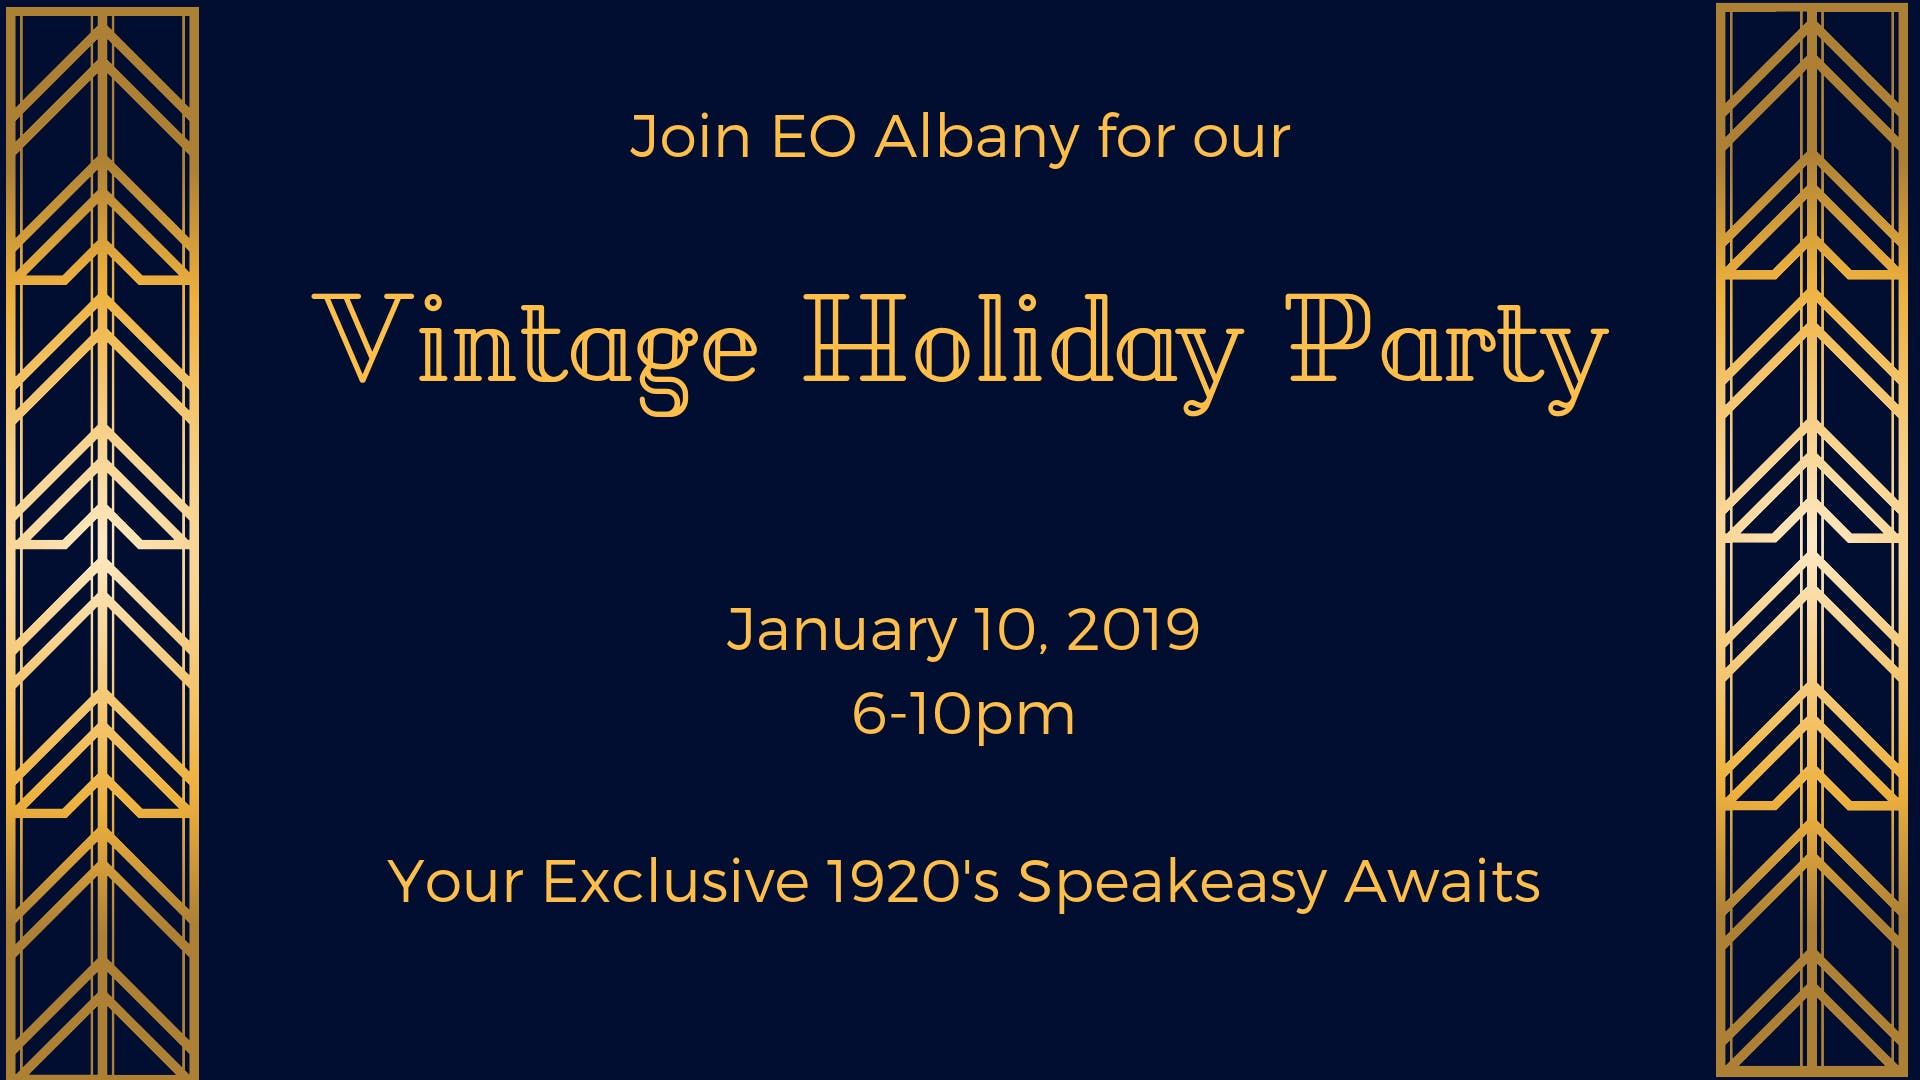 EO Albany Vintage Holiday Party